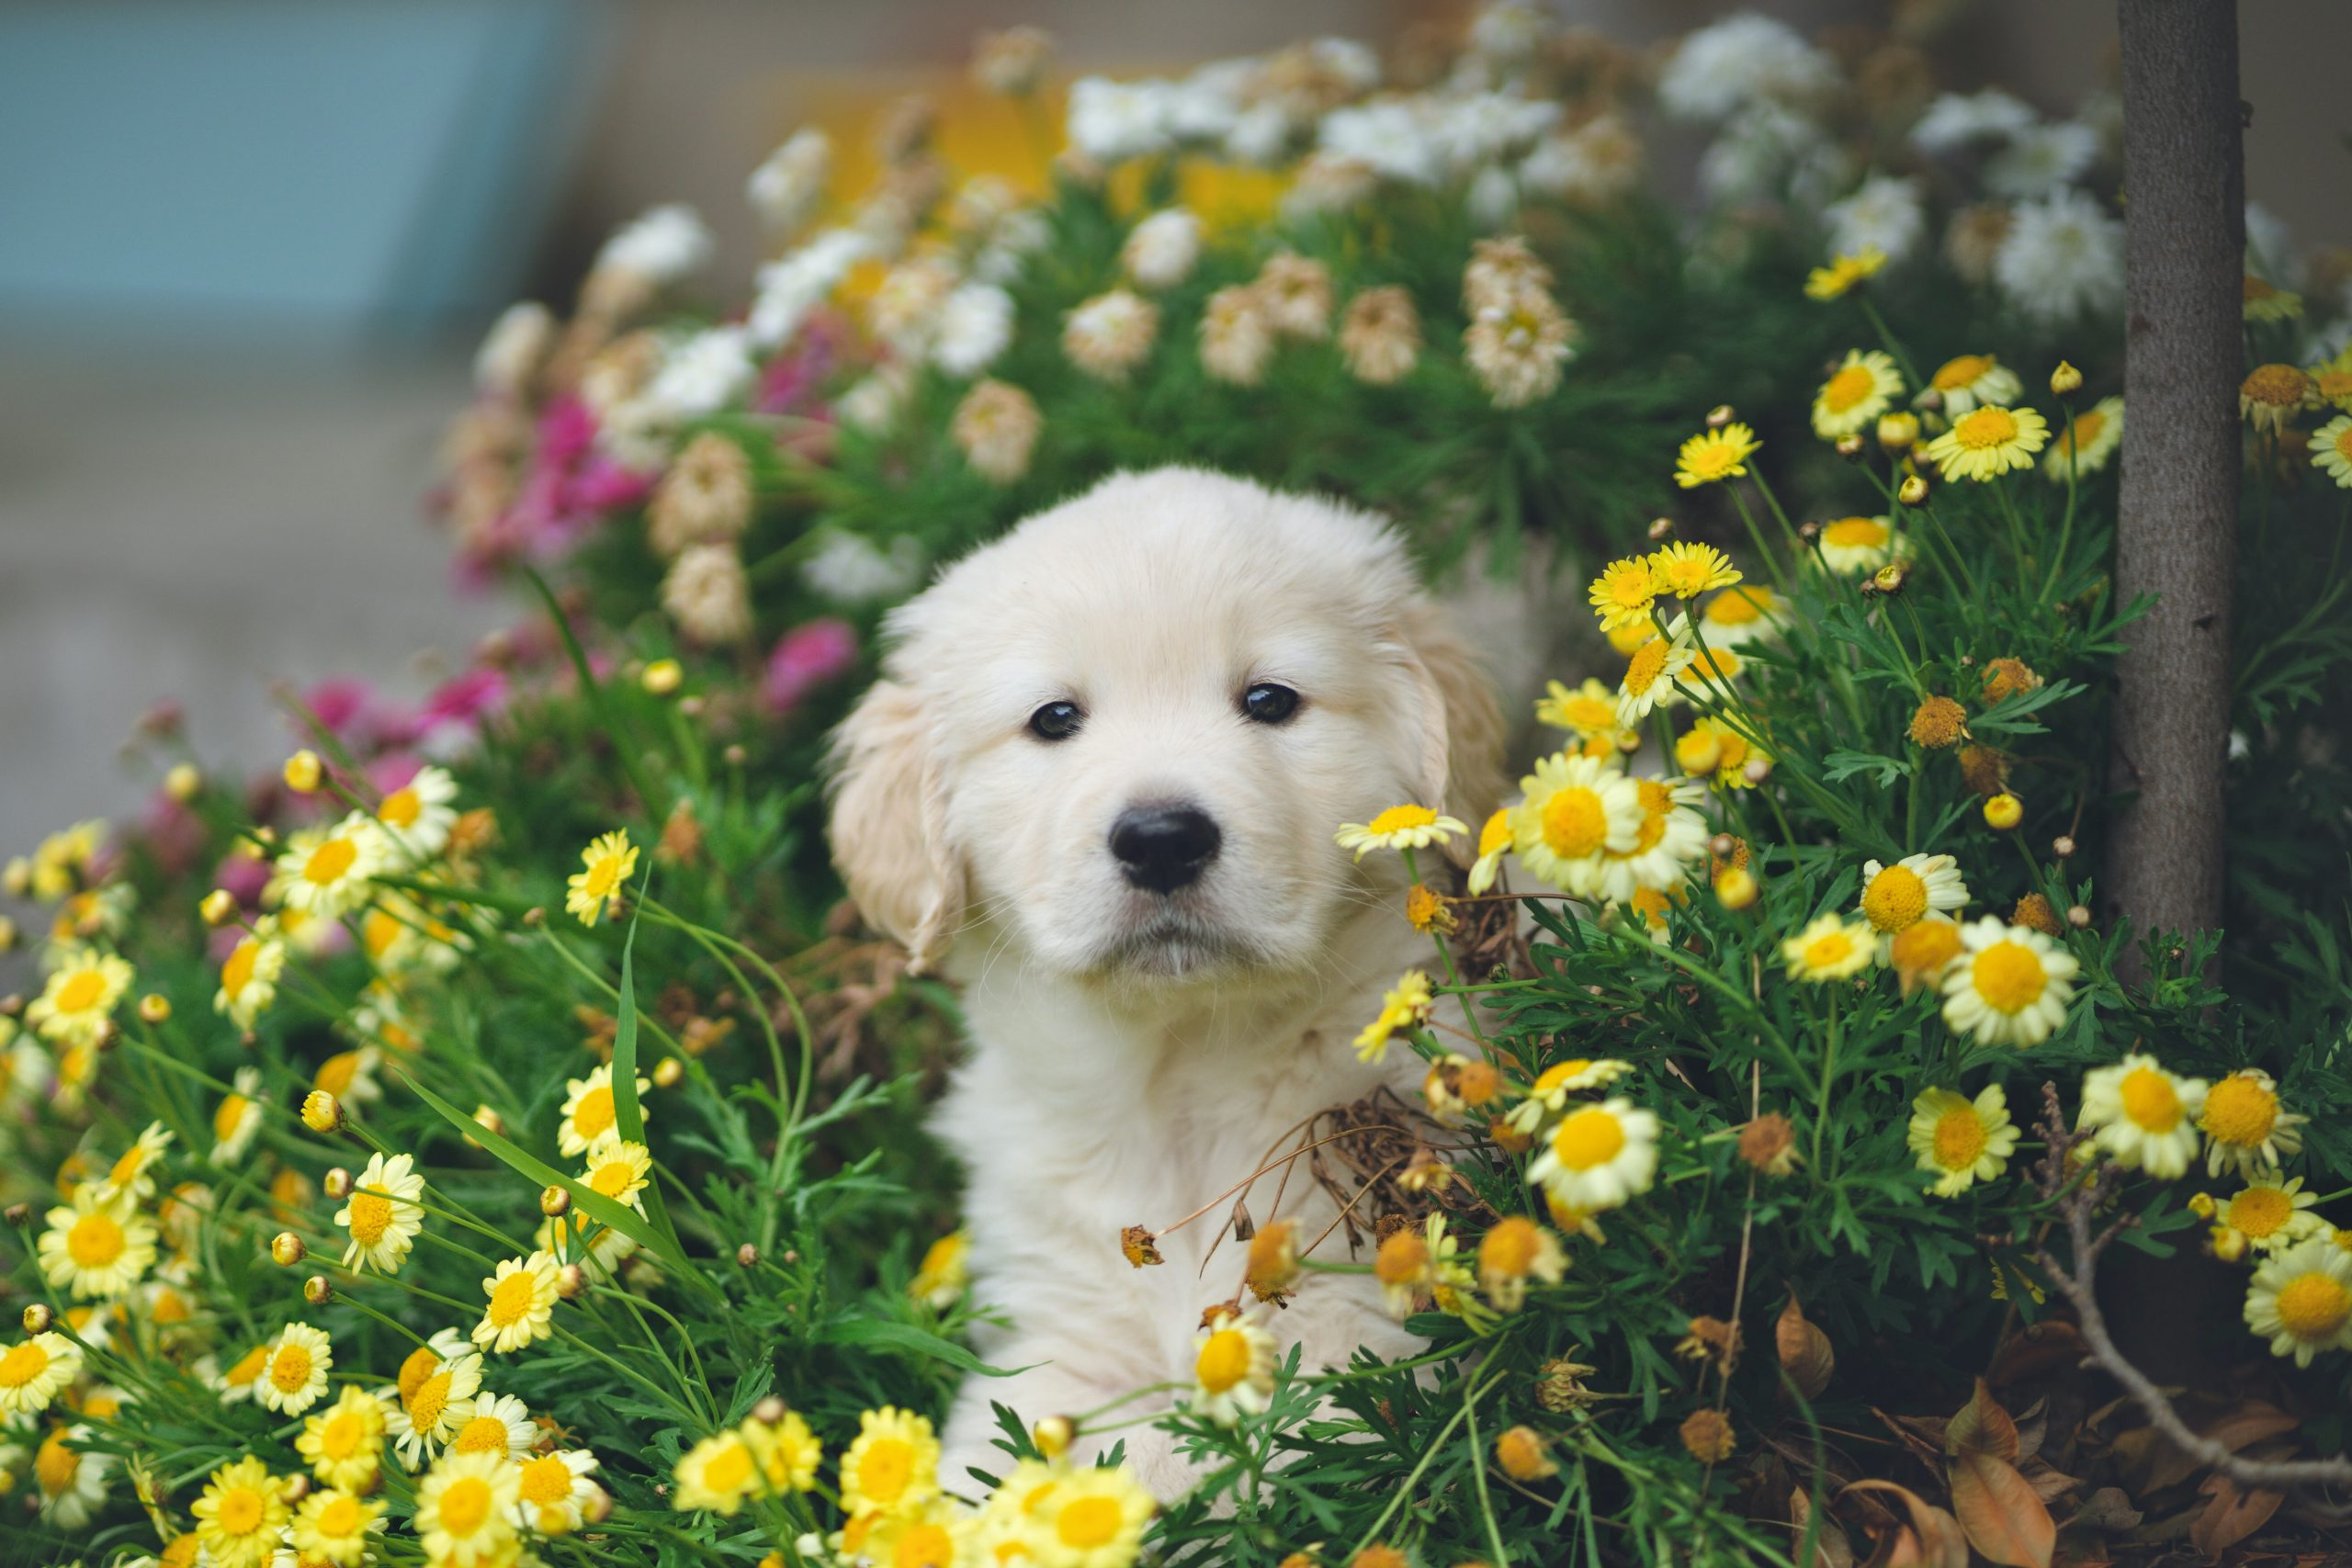 Guide to dog-friendly plants for the garden